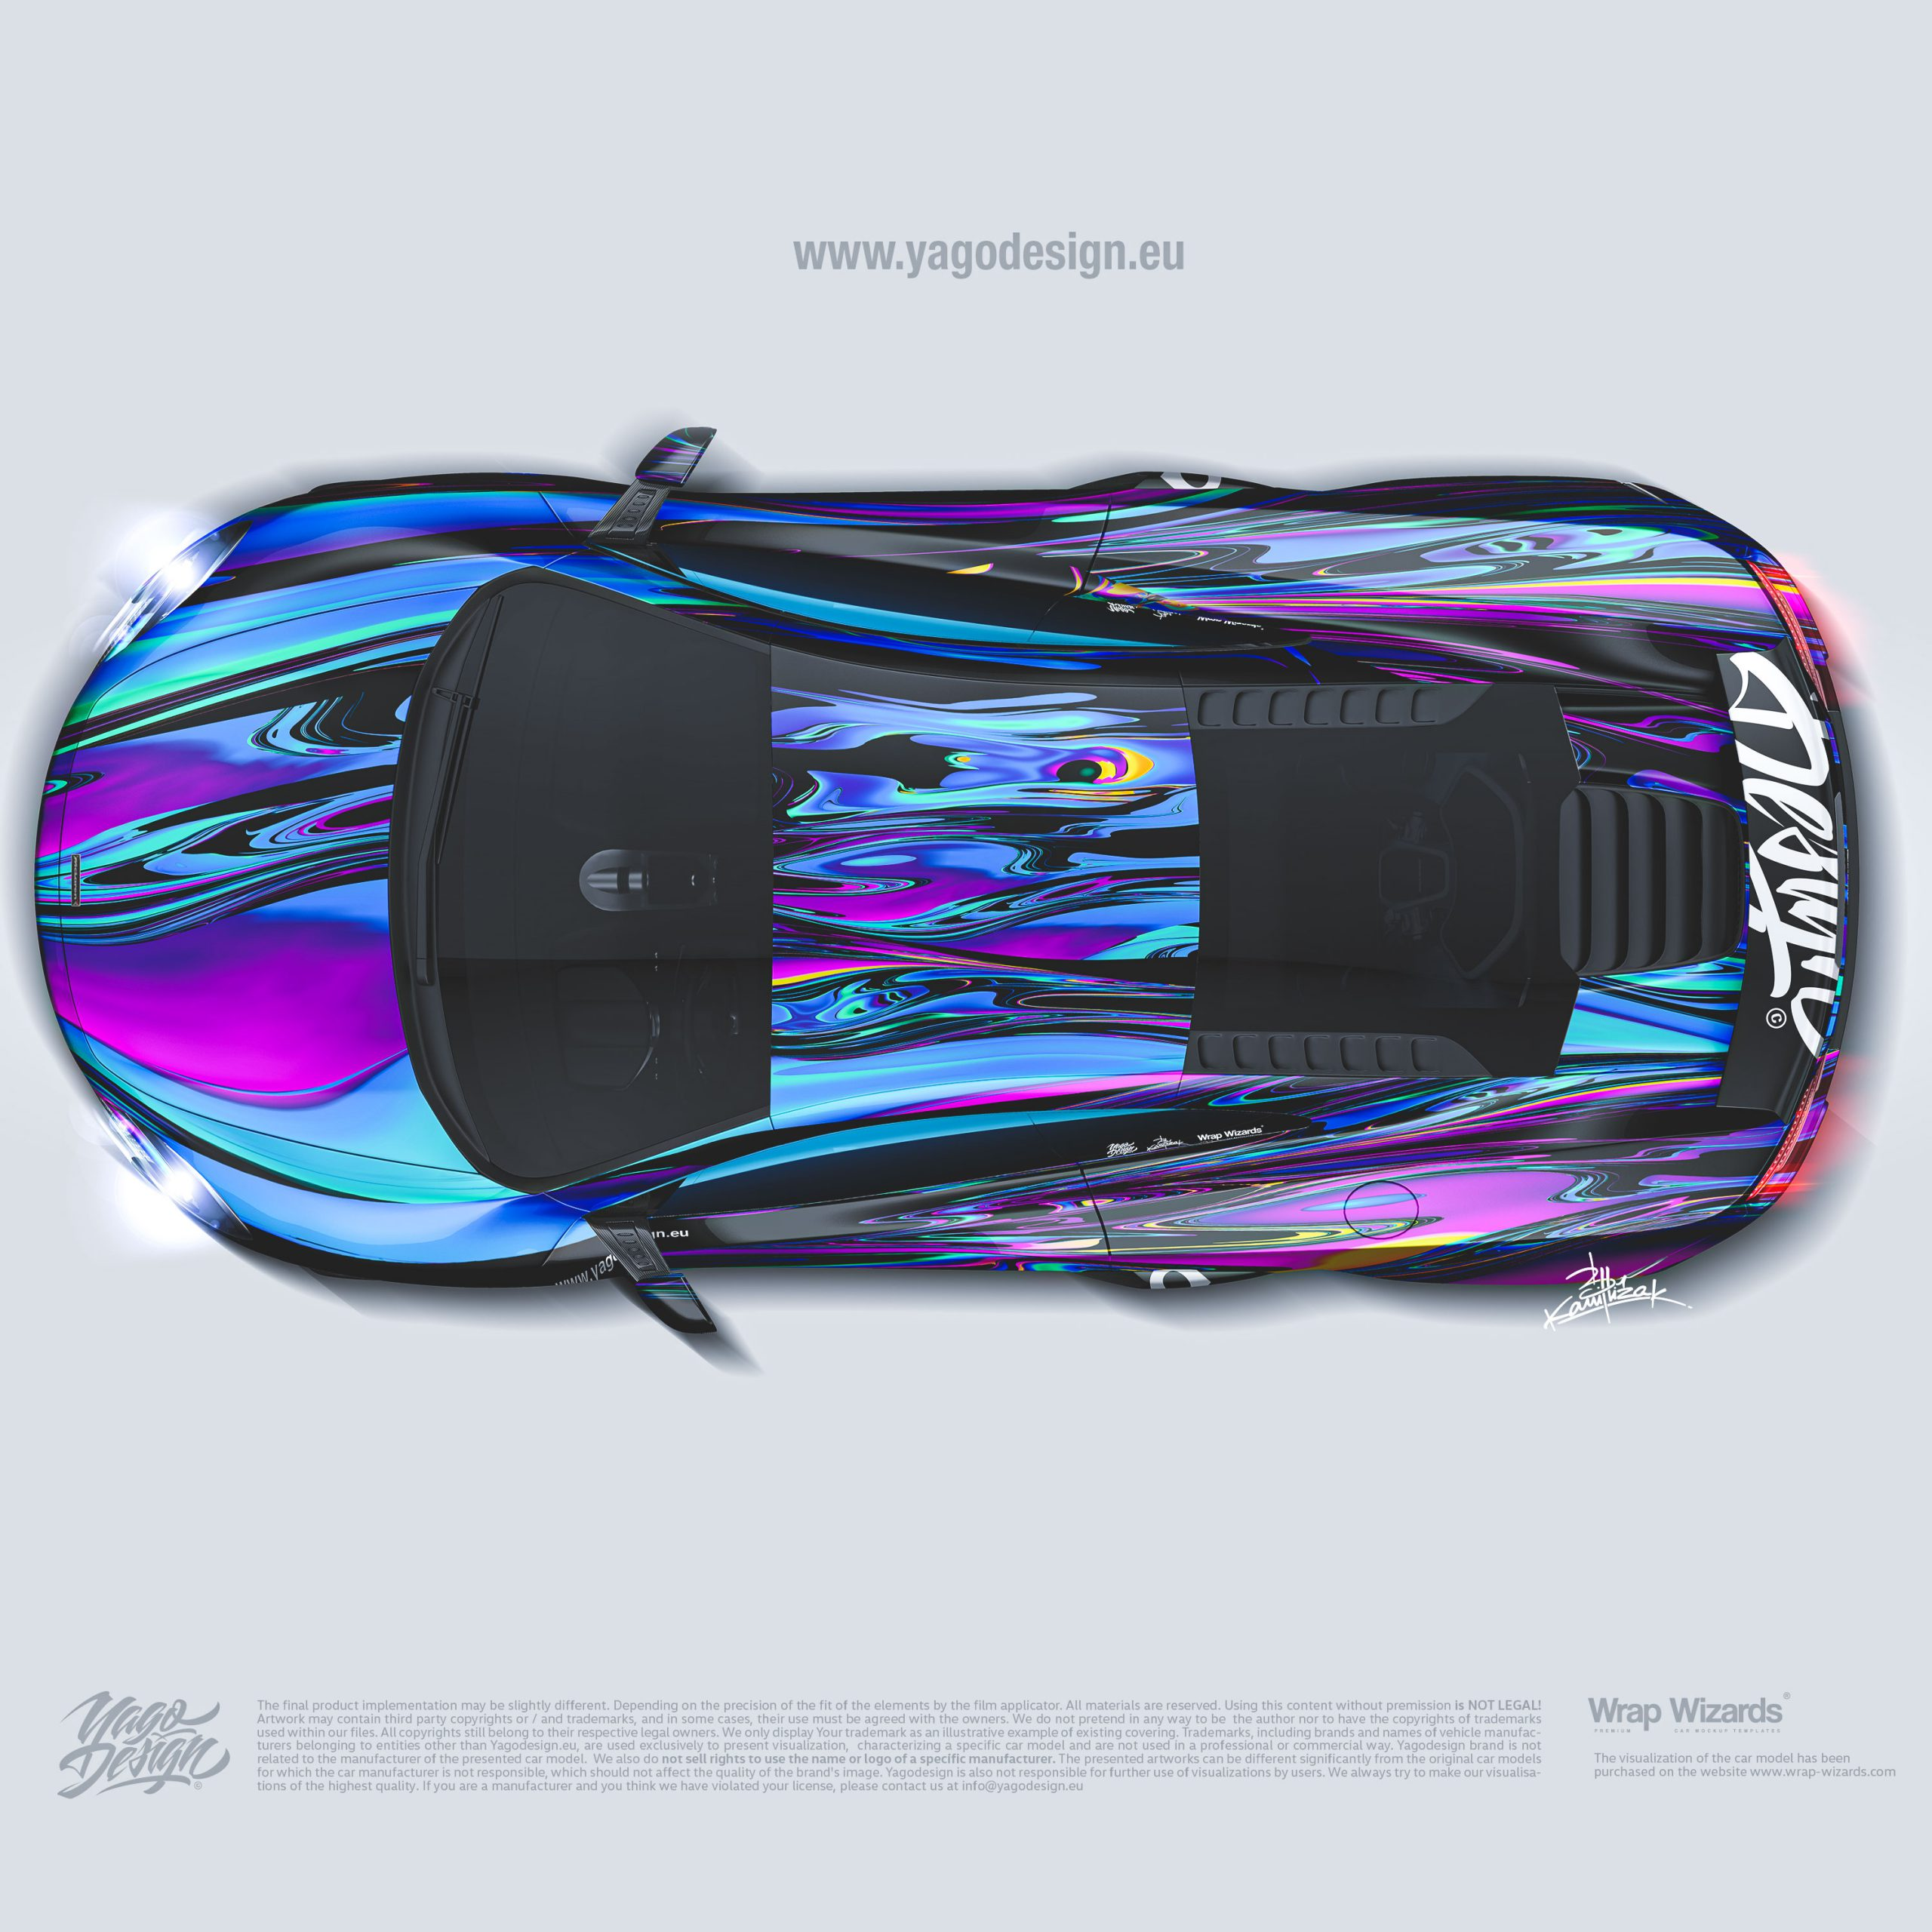 McLaren-650S-Coupe-By-Yagodesign-Automotive-Design-Studio-Top-View-scaled